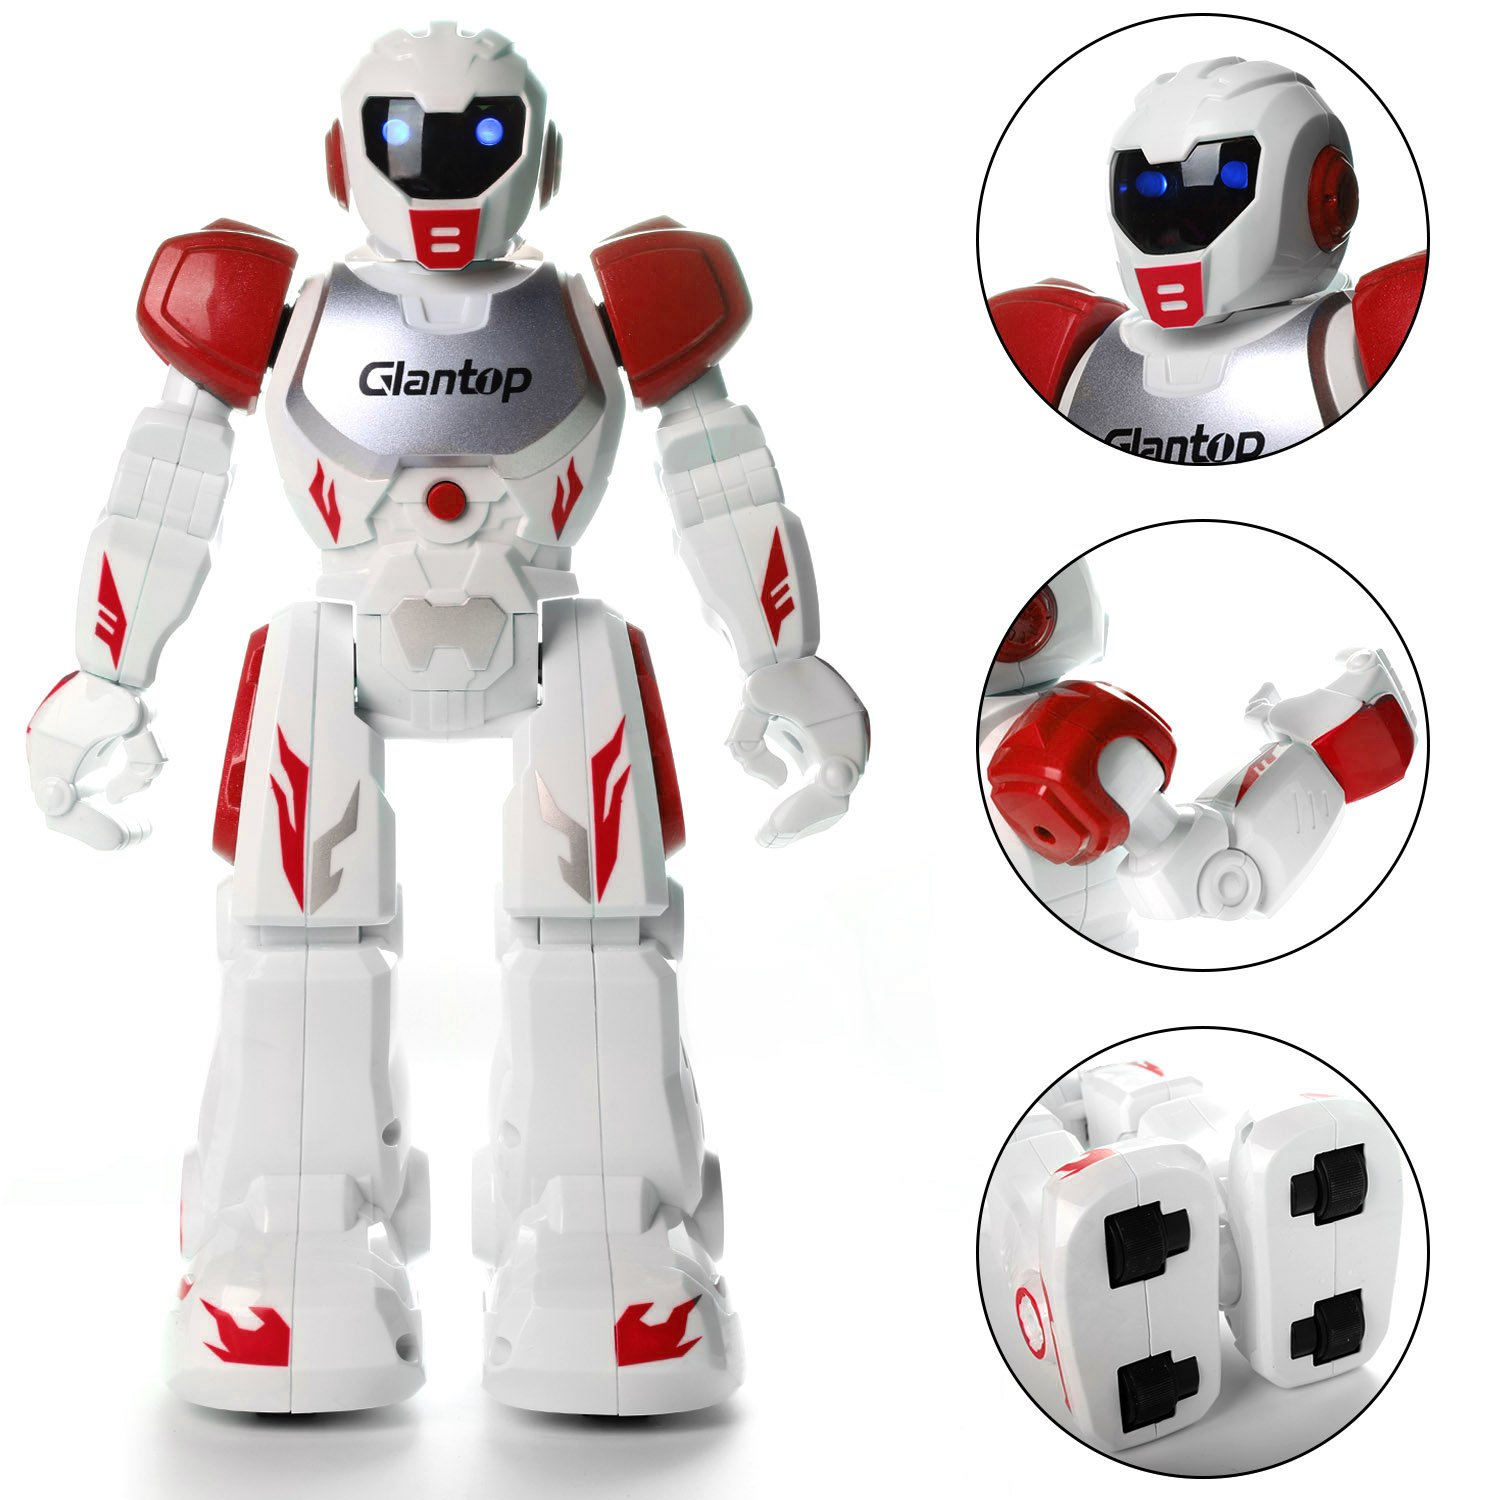 Glantop Remote Control RC Robots Interactive Walking Singing Dancing Smart Programmable Robotics for Kids Boys Girls (Red) by Glantop (Image #3)